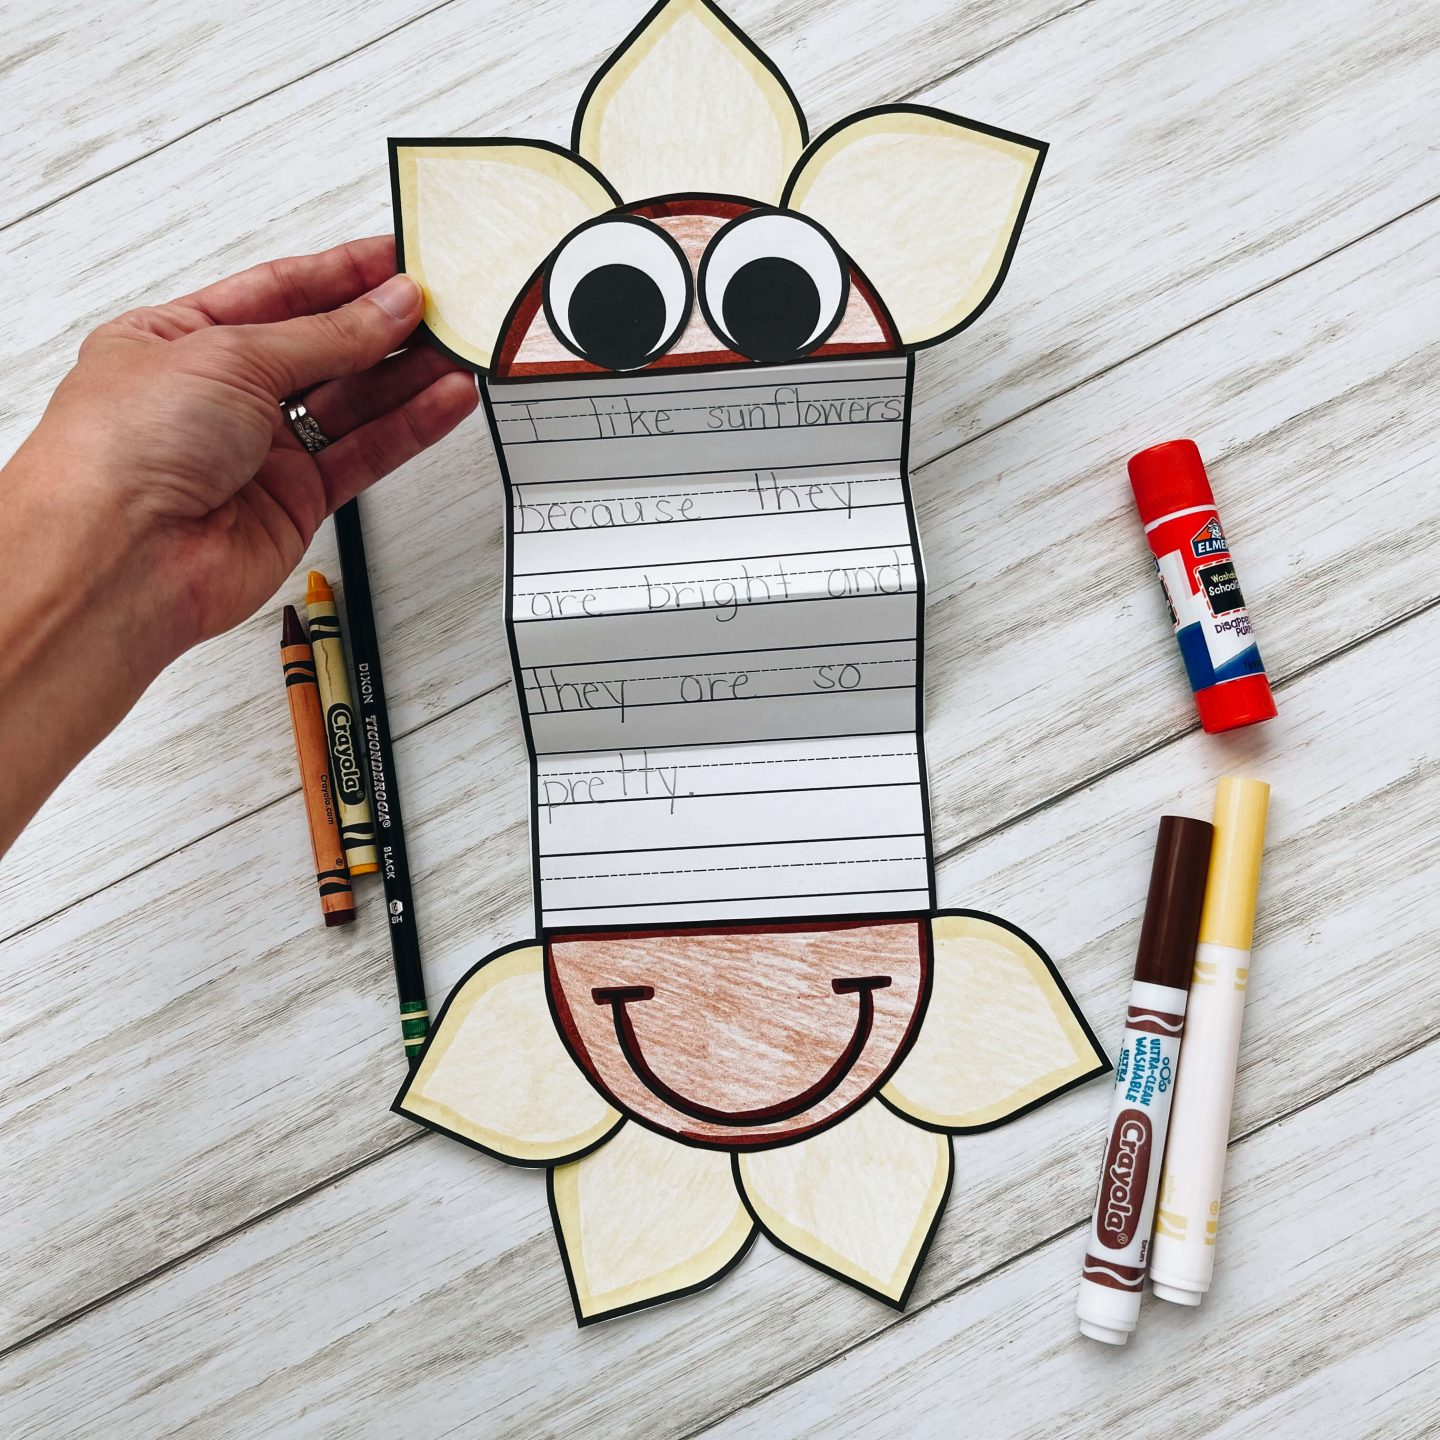 Fun fall craft for kids that is educational and fun!